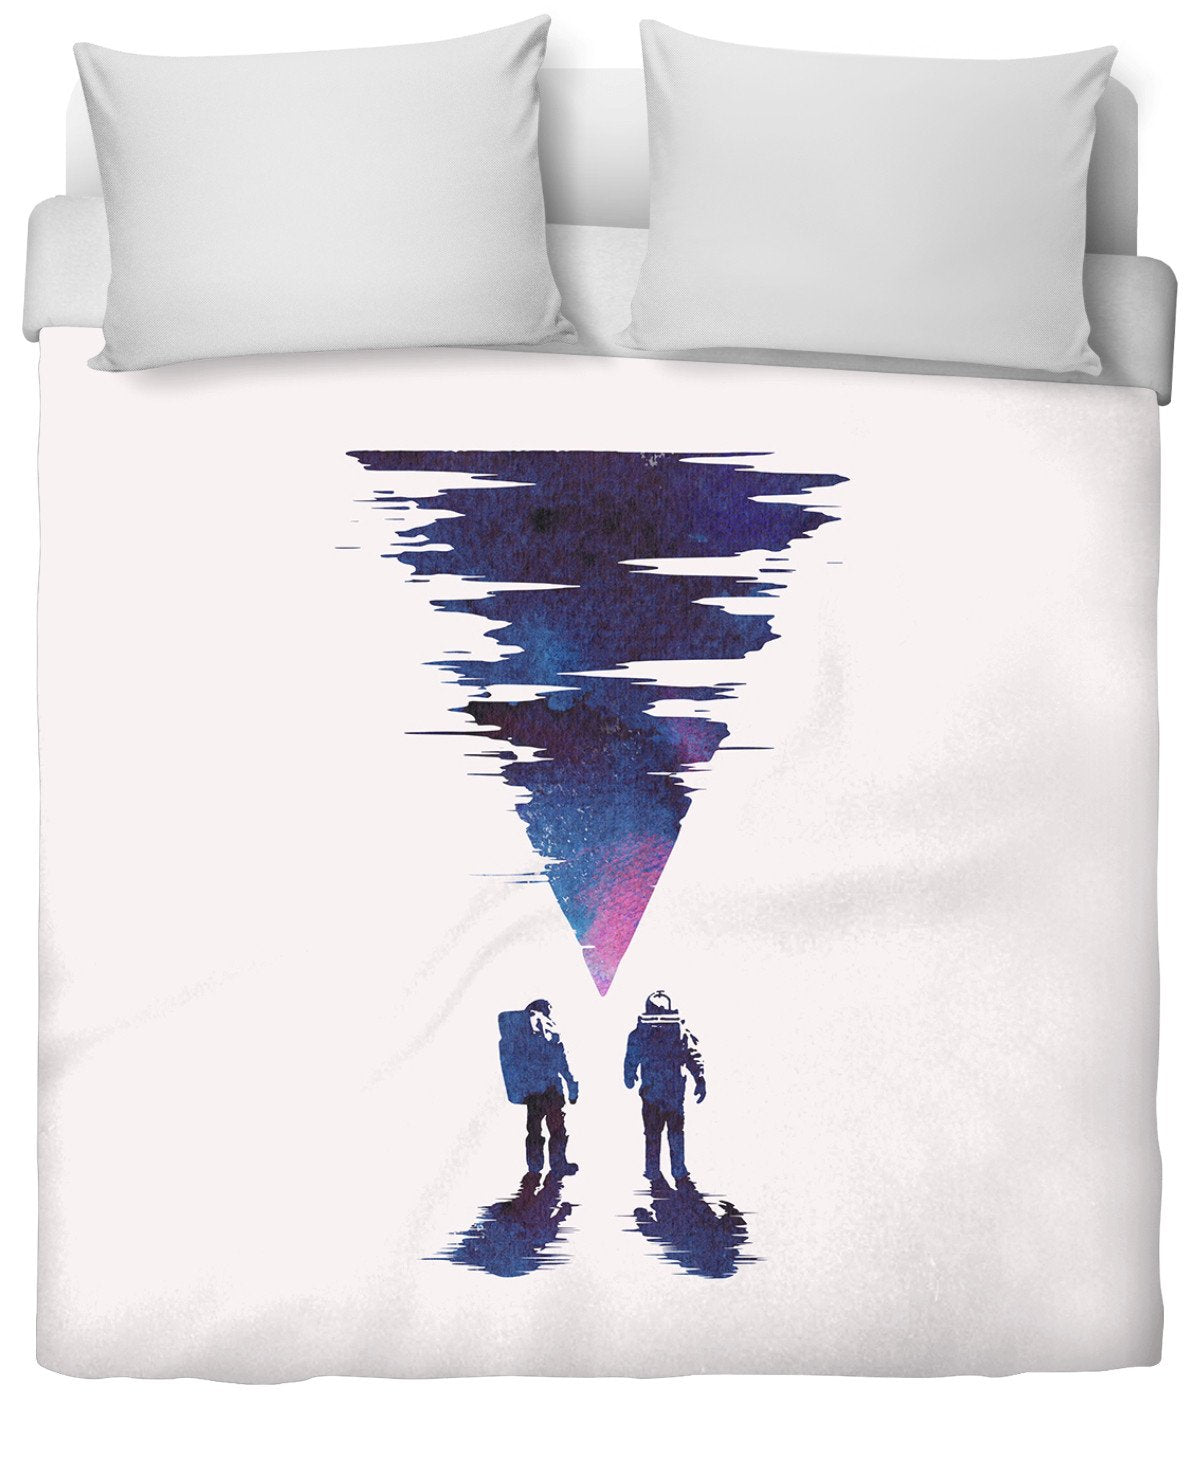 The thing Duvet Cover